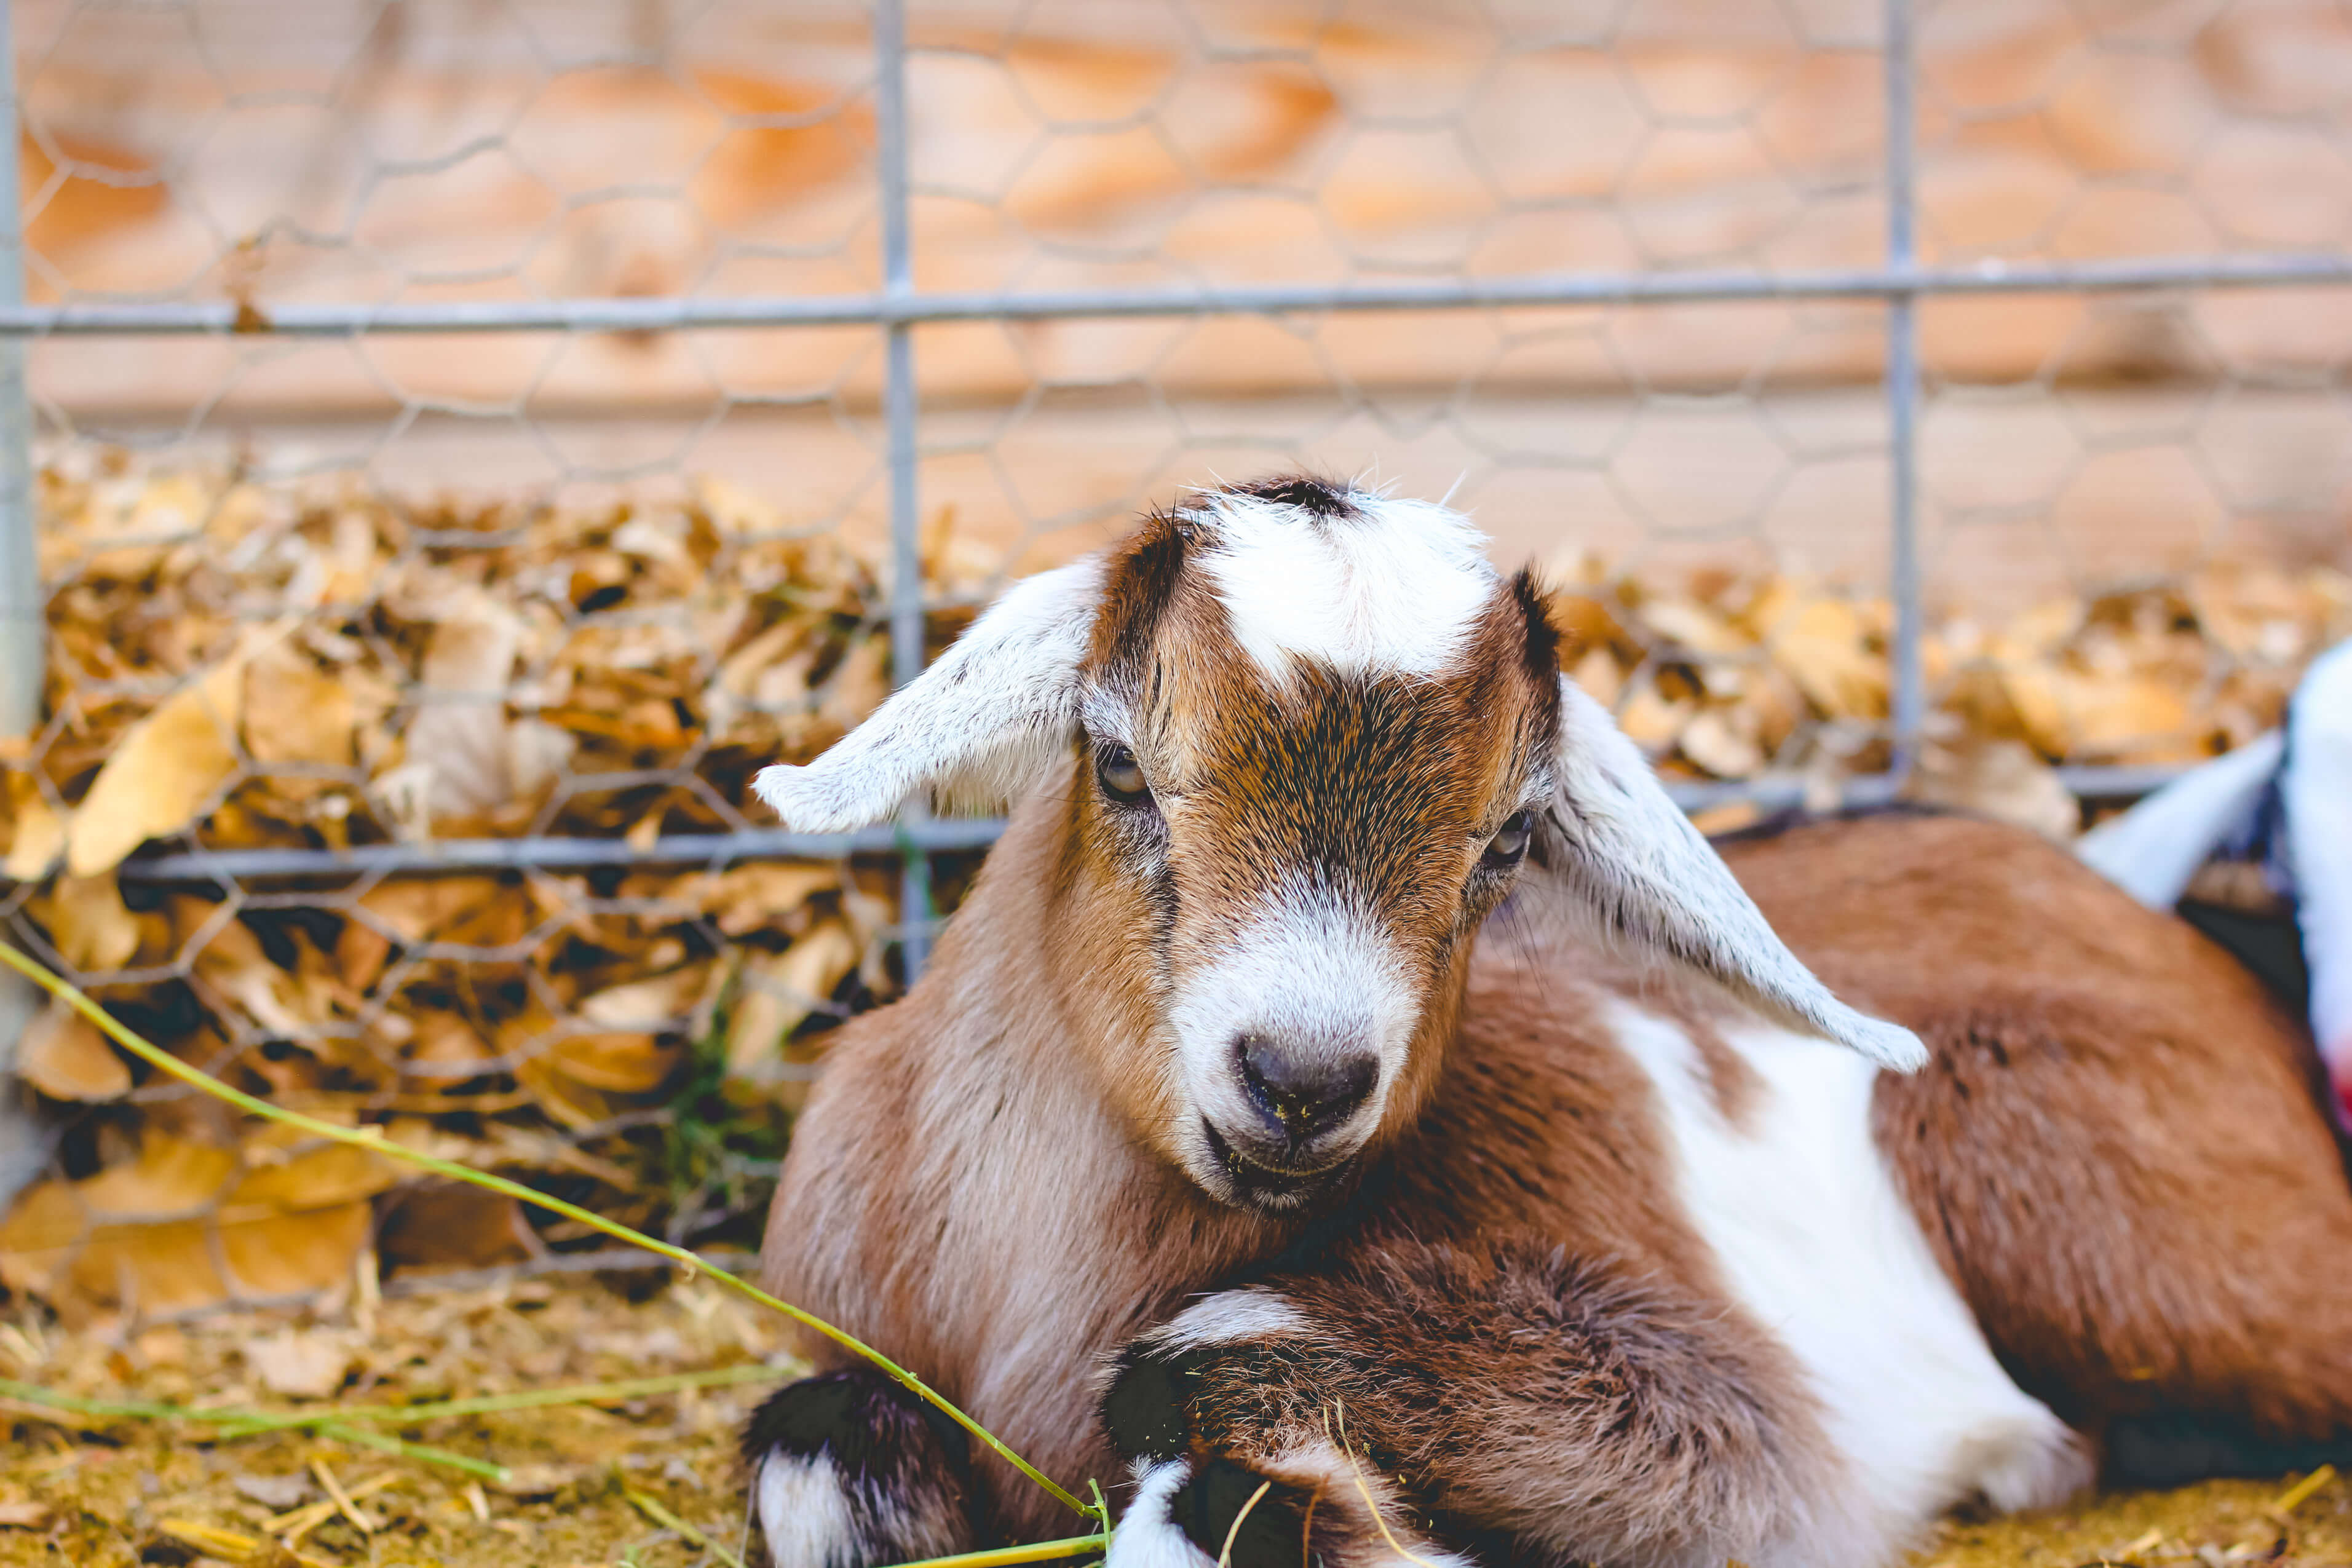 Nubian baby goat dewormed.